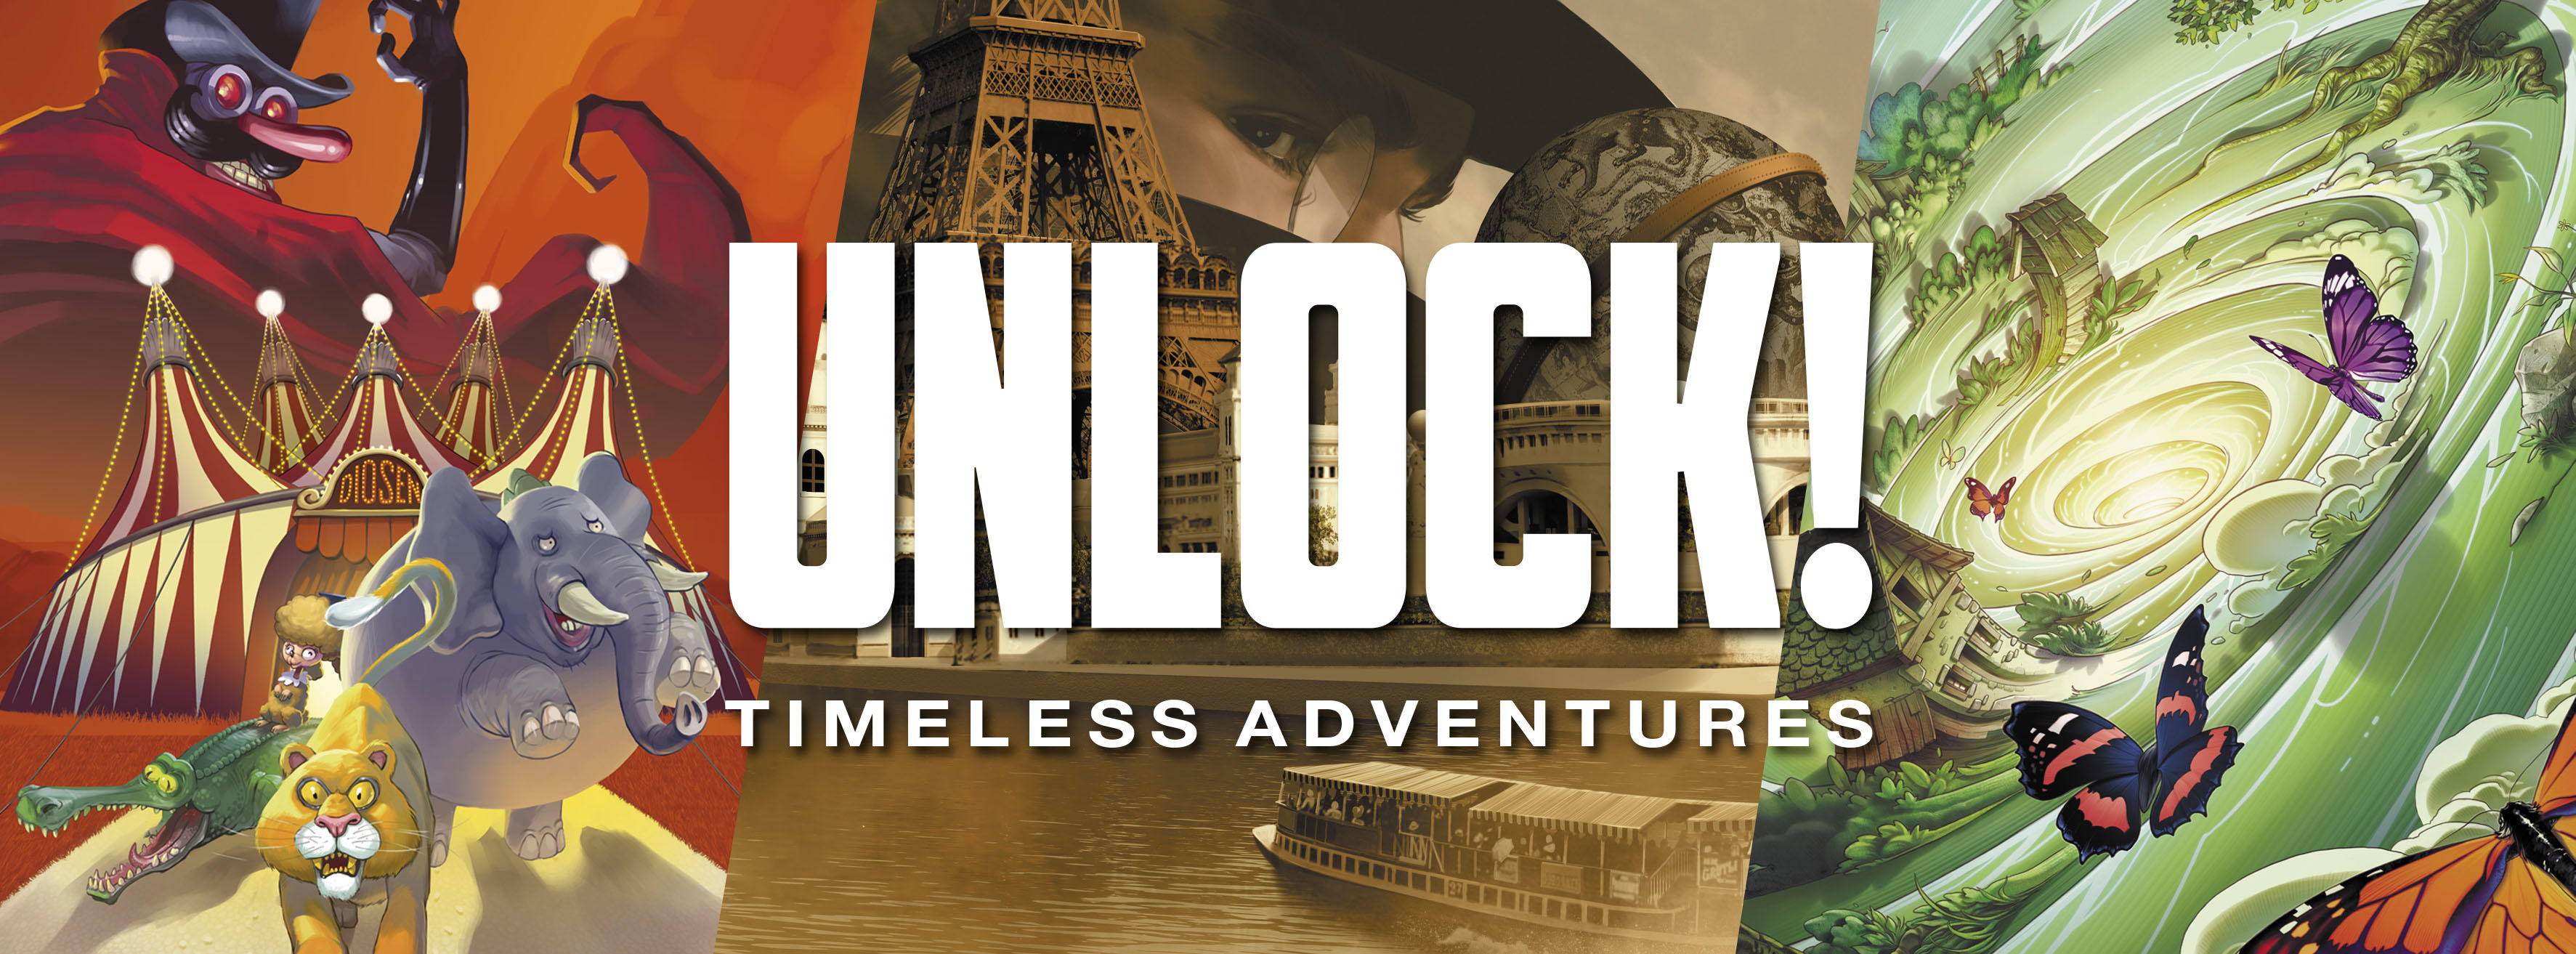 Image result for Unlock! Timeless adventures